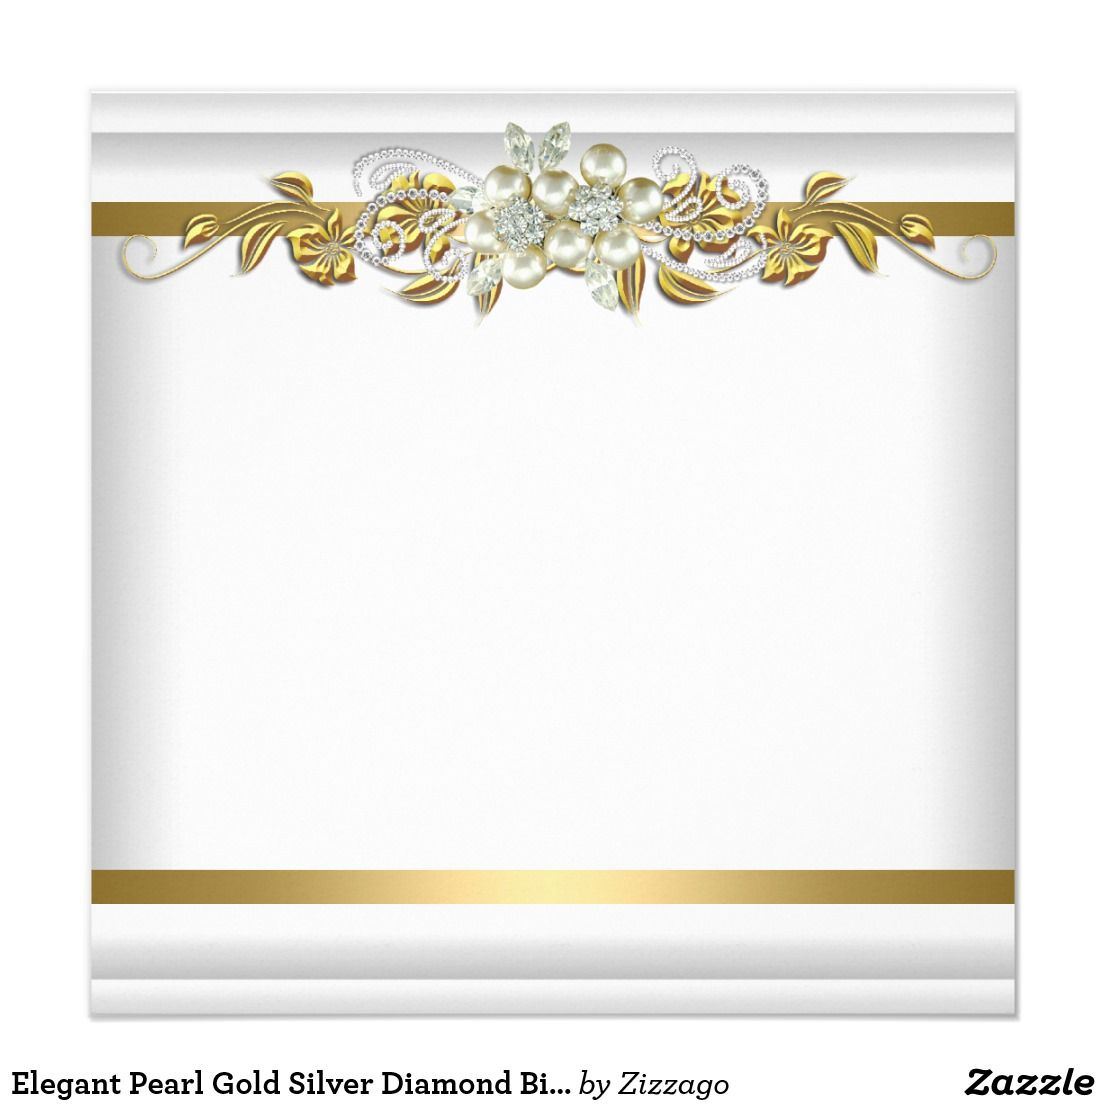 Elegant Pearl Gold Silver Diamond Birthday Party 2 Invitation